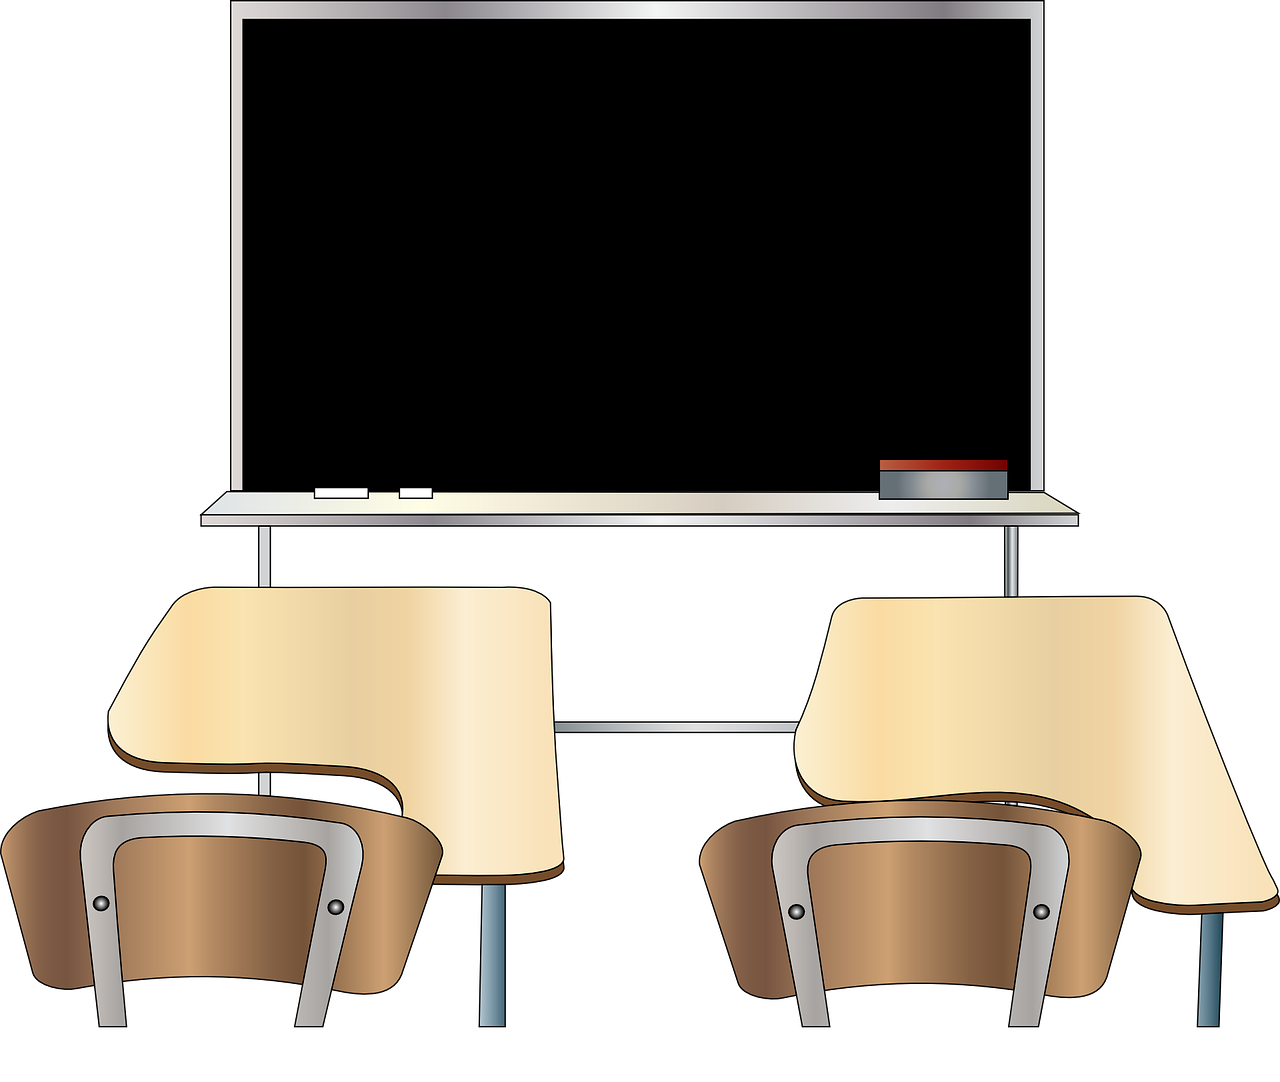 School room clipart image stock health care at school | Ask ECAC image stock